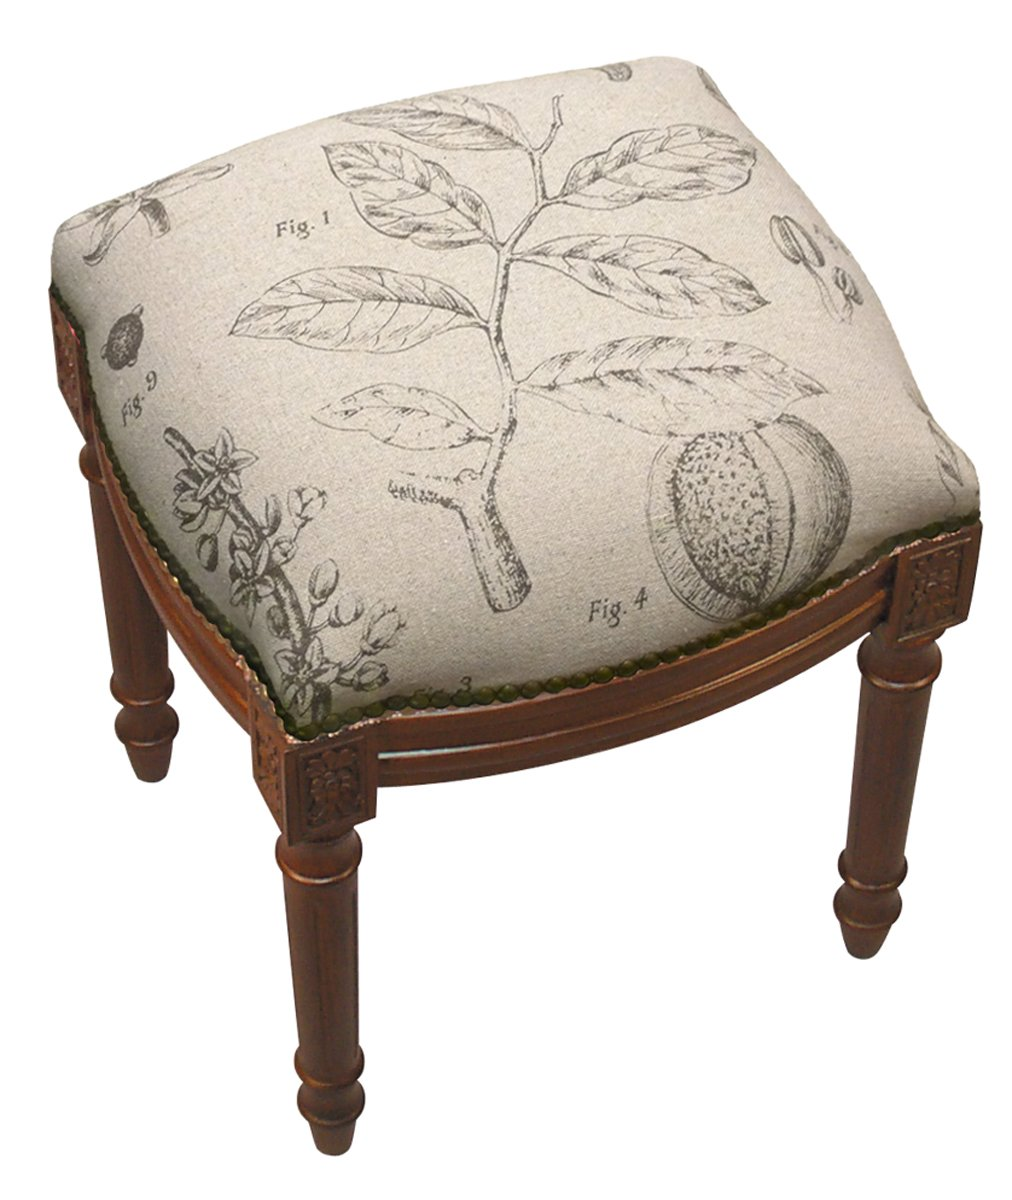 SketchONE Linen Upholstered Vanity Stool, Plant Study